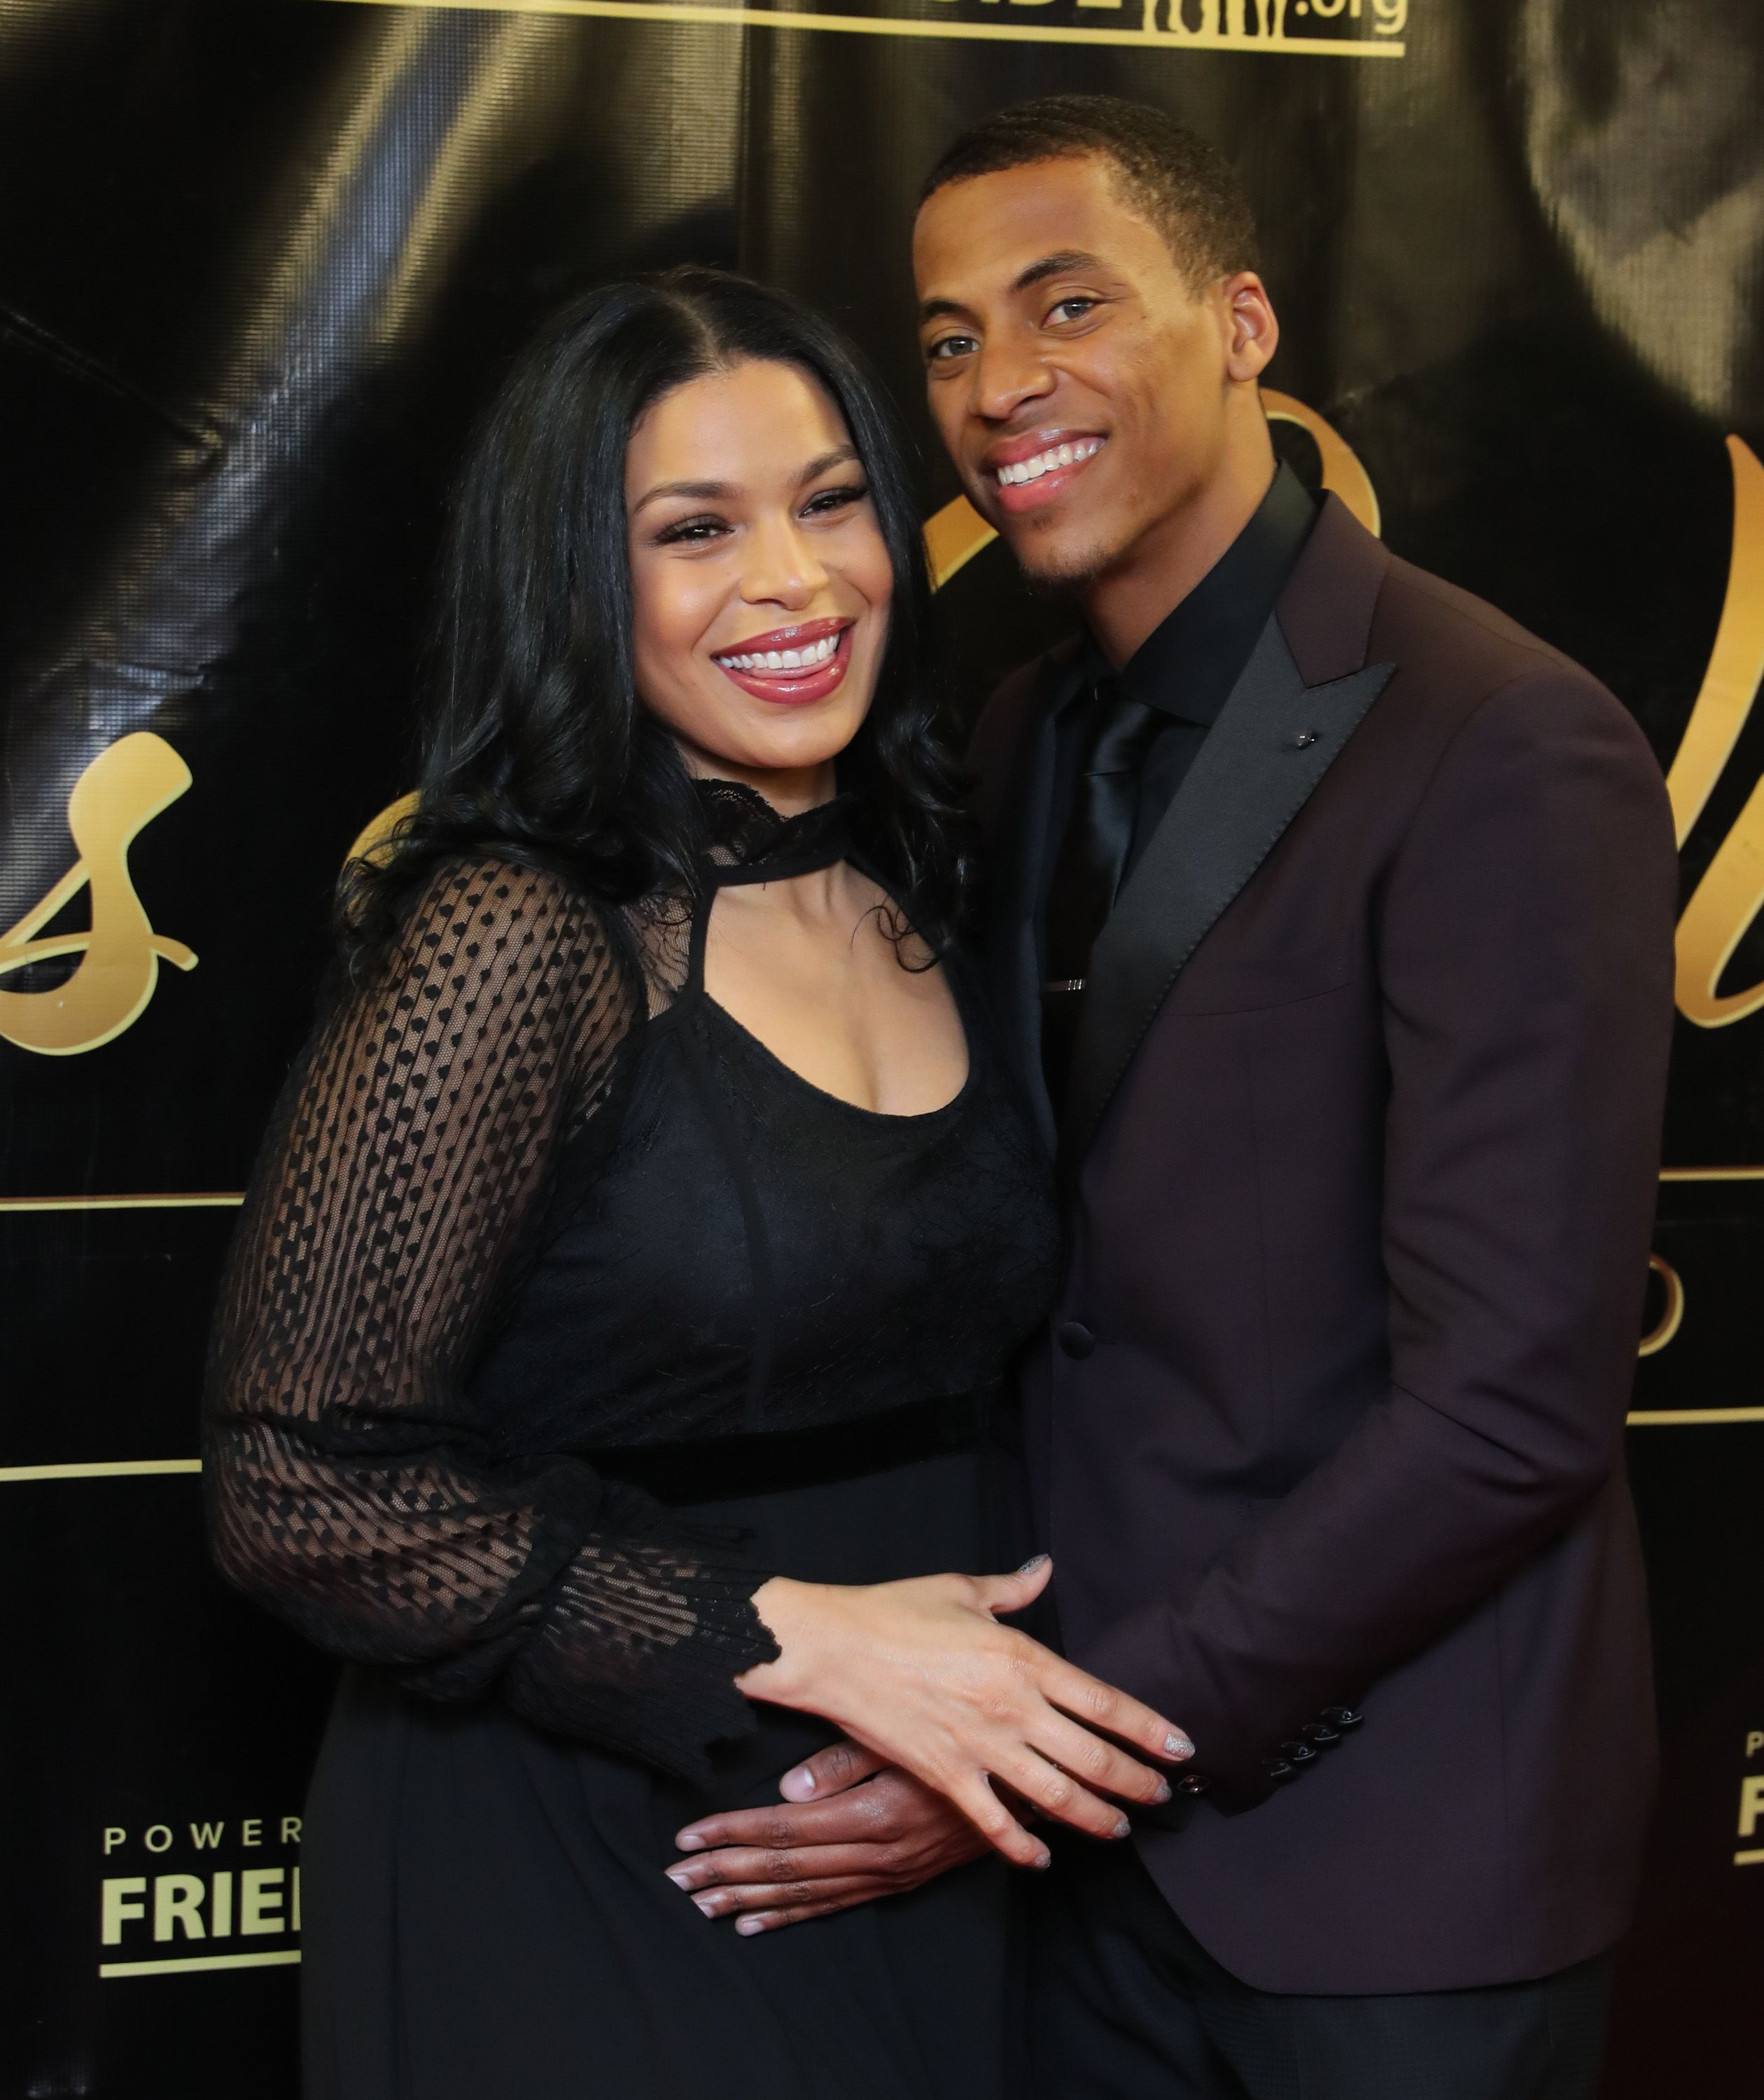 Jordin Sparks And Husband Dana Isaiah at the 2017 One Night With The Stars Benefit at The Theater at Madison Square Garden on December 4, 2017 | Photo: Getty Images